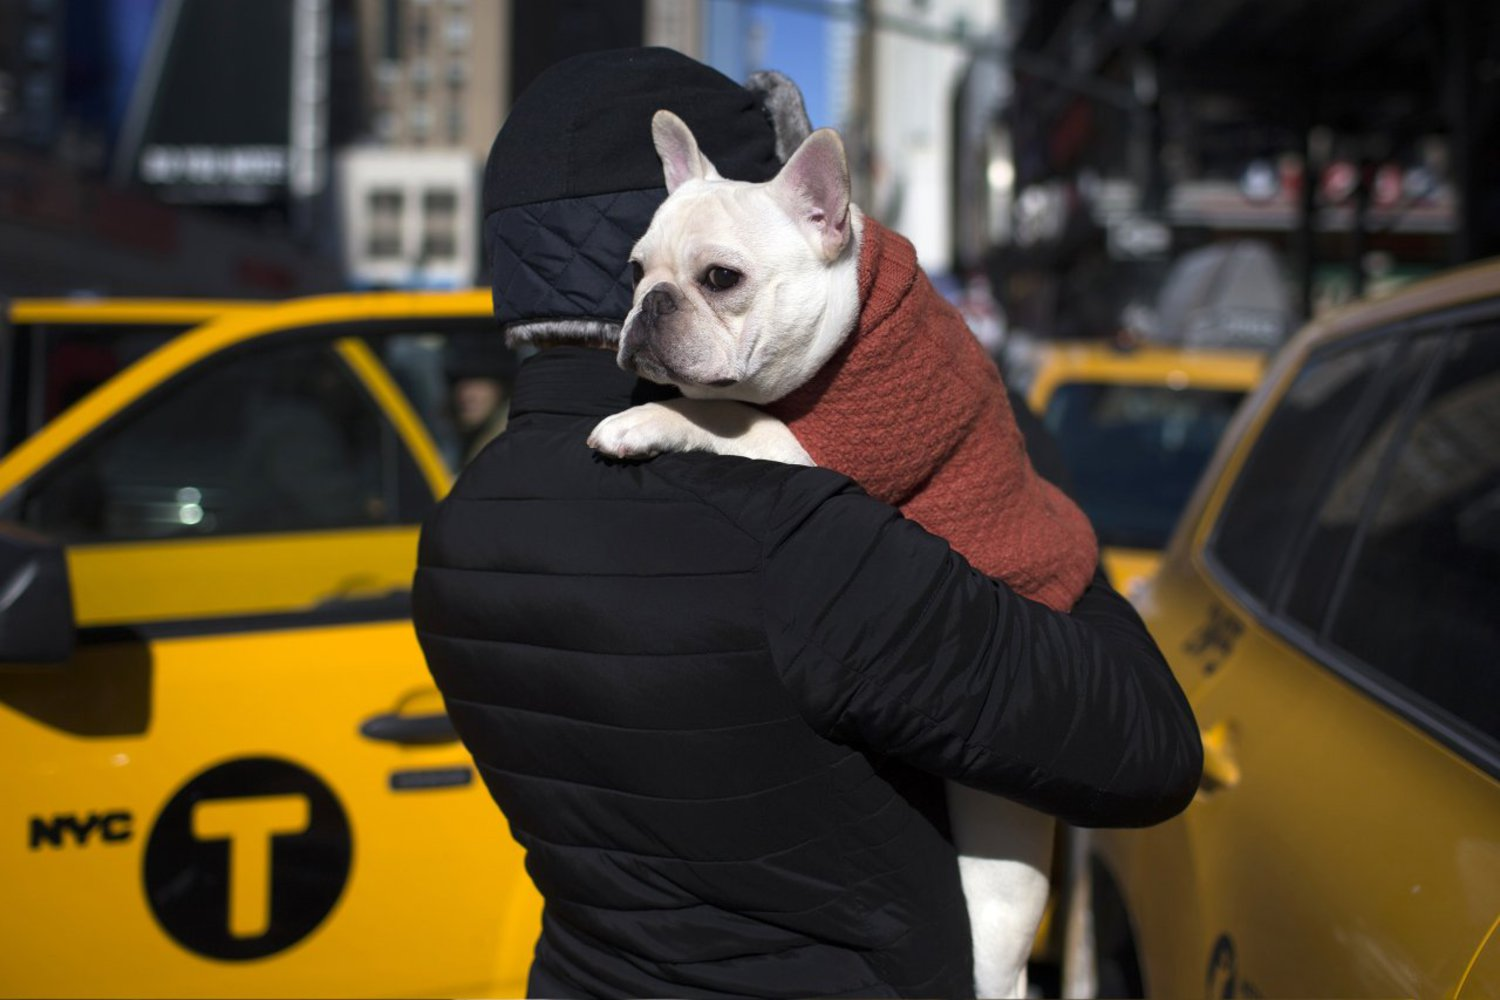 Luke, a French bulldog, is carried by his owner Paul, of New York City, outside New York's Pennsylvania Hotel ahead of the 139th Westminster Kennel Club Annual Dog Show in Manhattan, February 15, 2015.